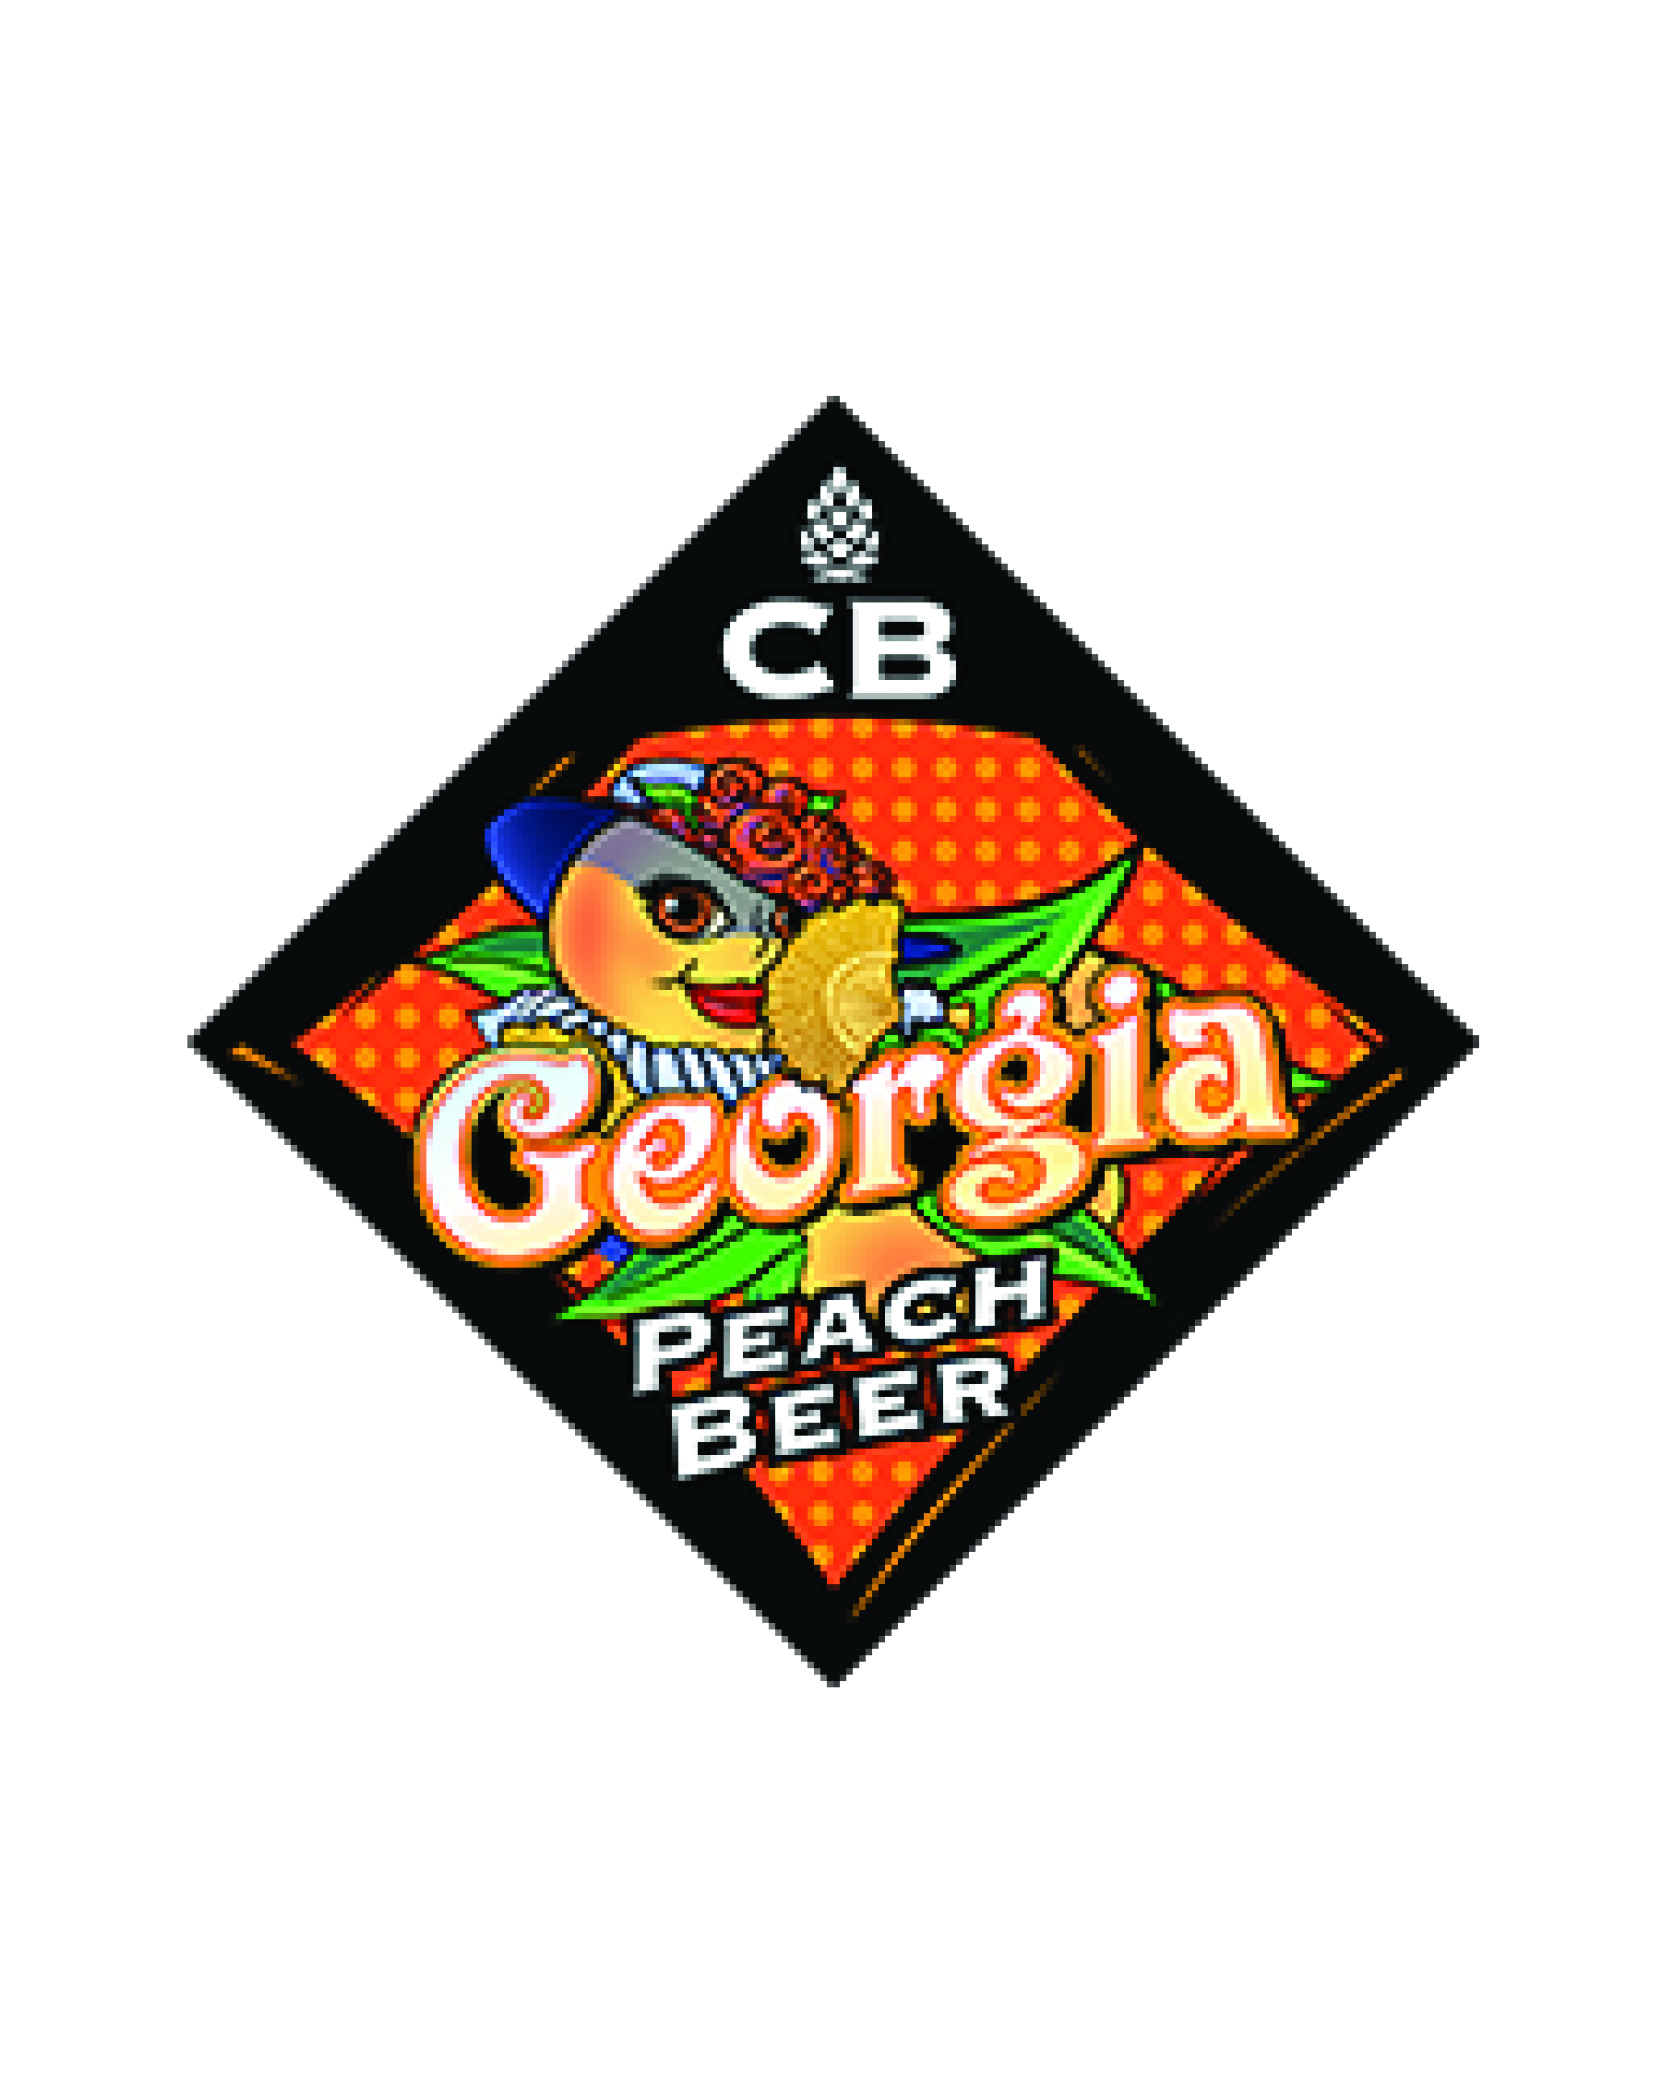 Craft Brewers Georgia Peach Beer